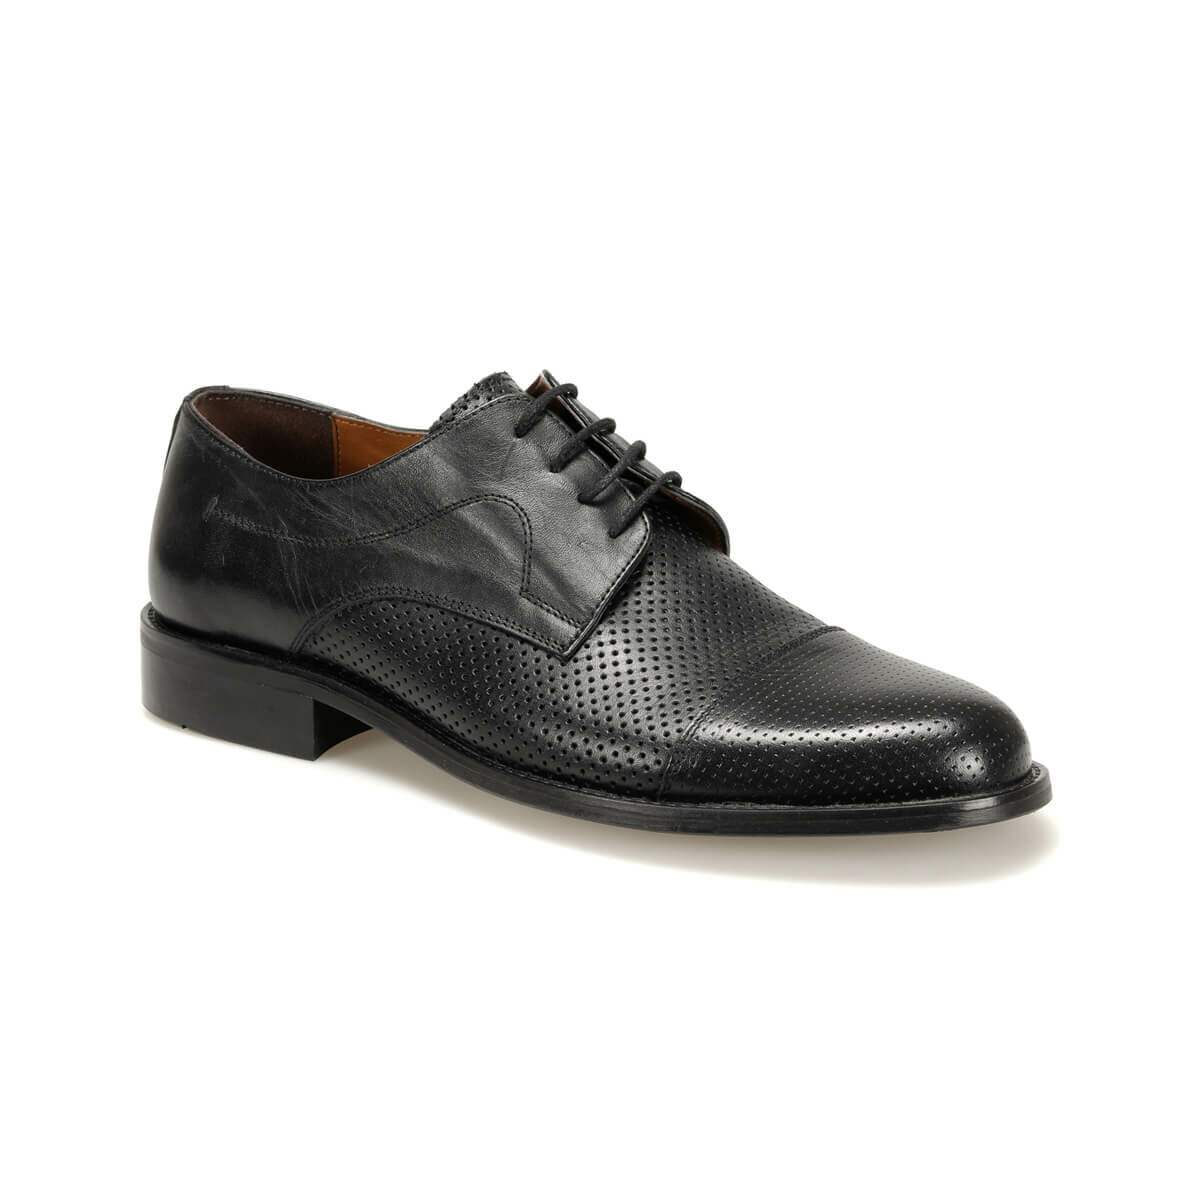 FLO 3929 Black Men 'S Classic Shoes Garamond